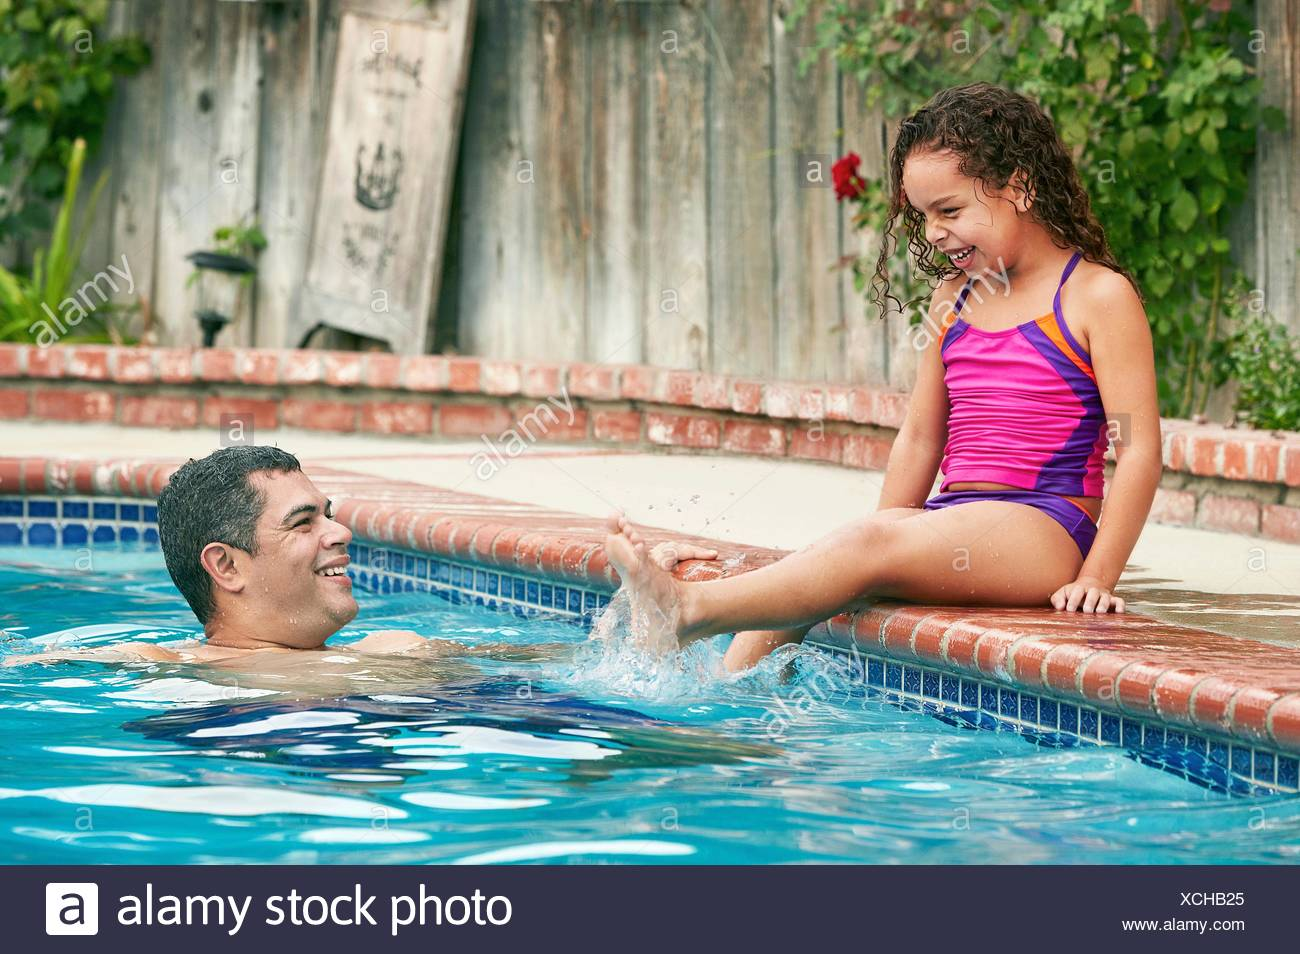 Maillots girl sitting poolside splashing père smiling Photo Stock